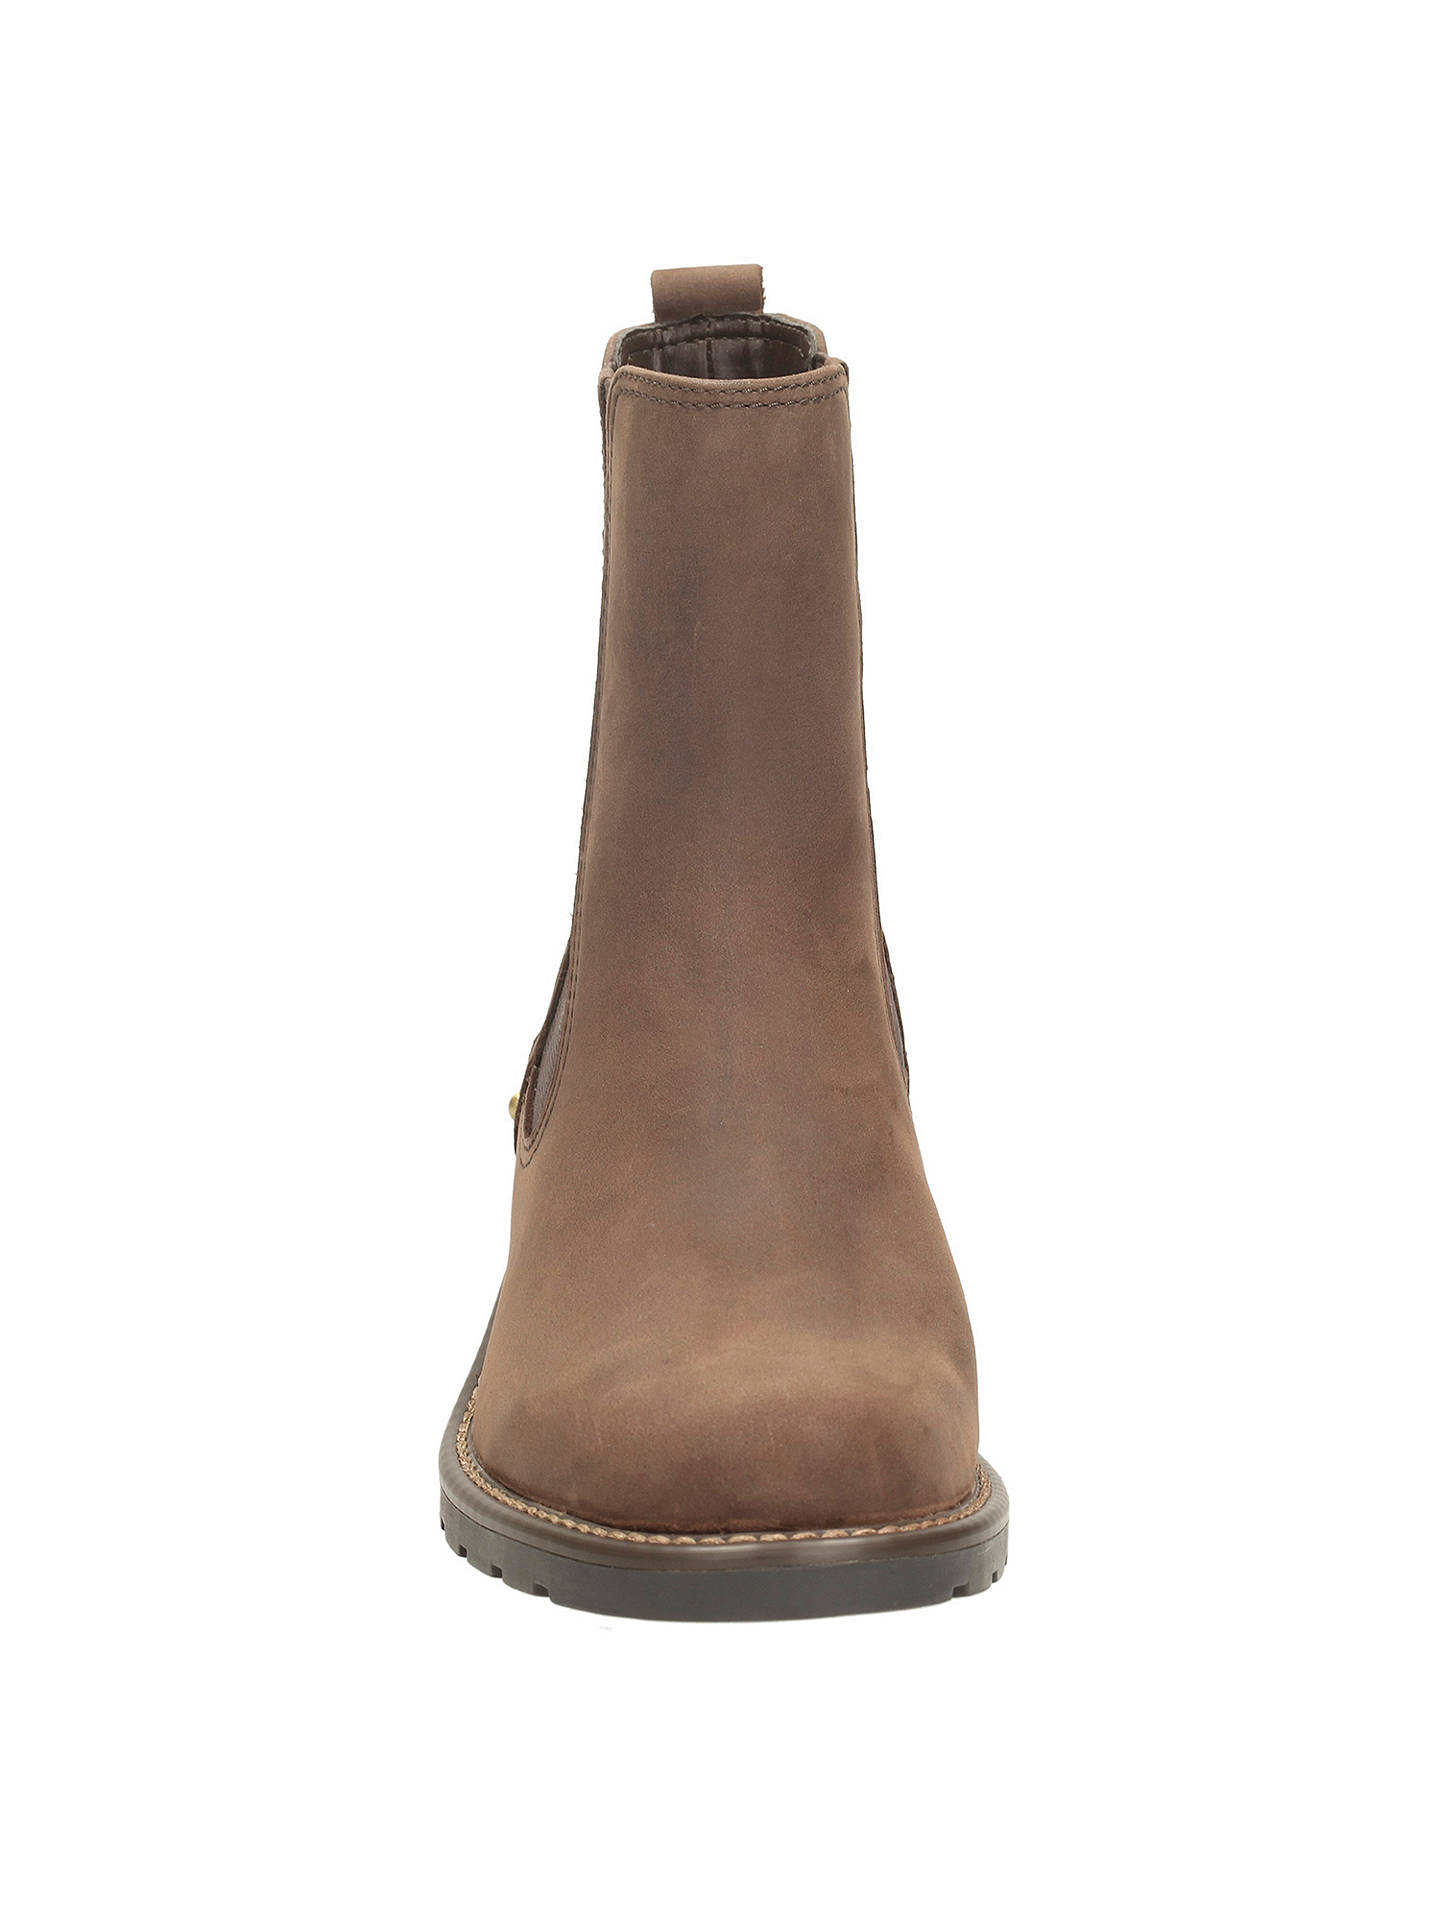 bbb2cb082a761 ... Buy Clarks Orinoco Club Leather Ankle Boots, Brown, 4 Online at  johnlewis.com ...